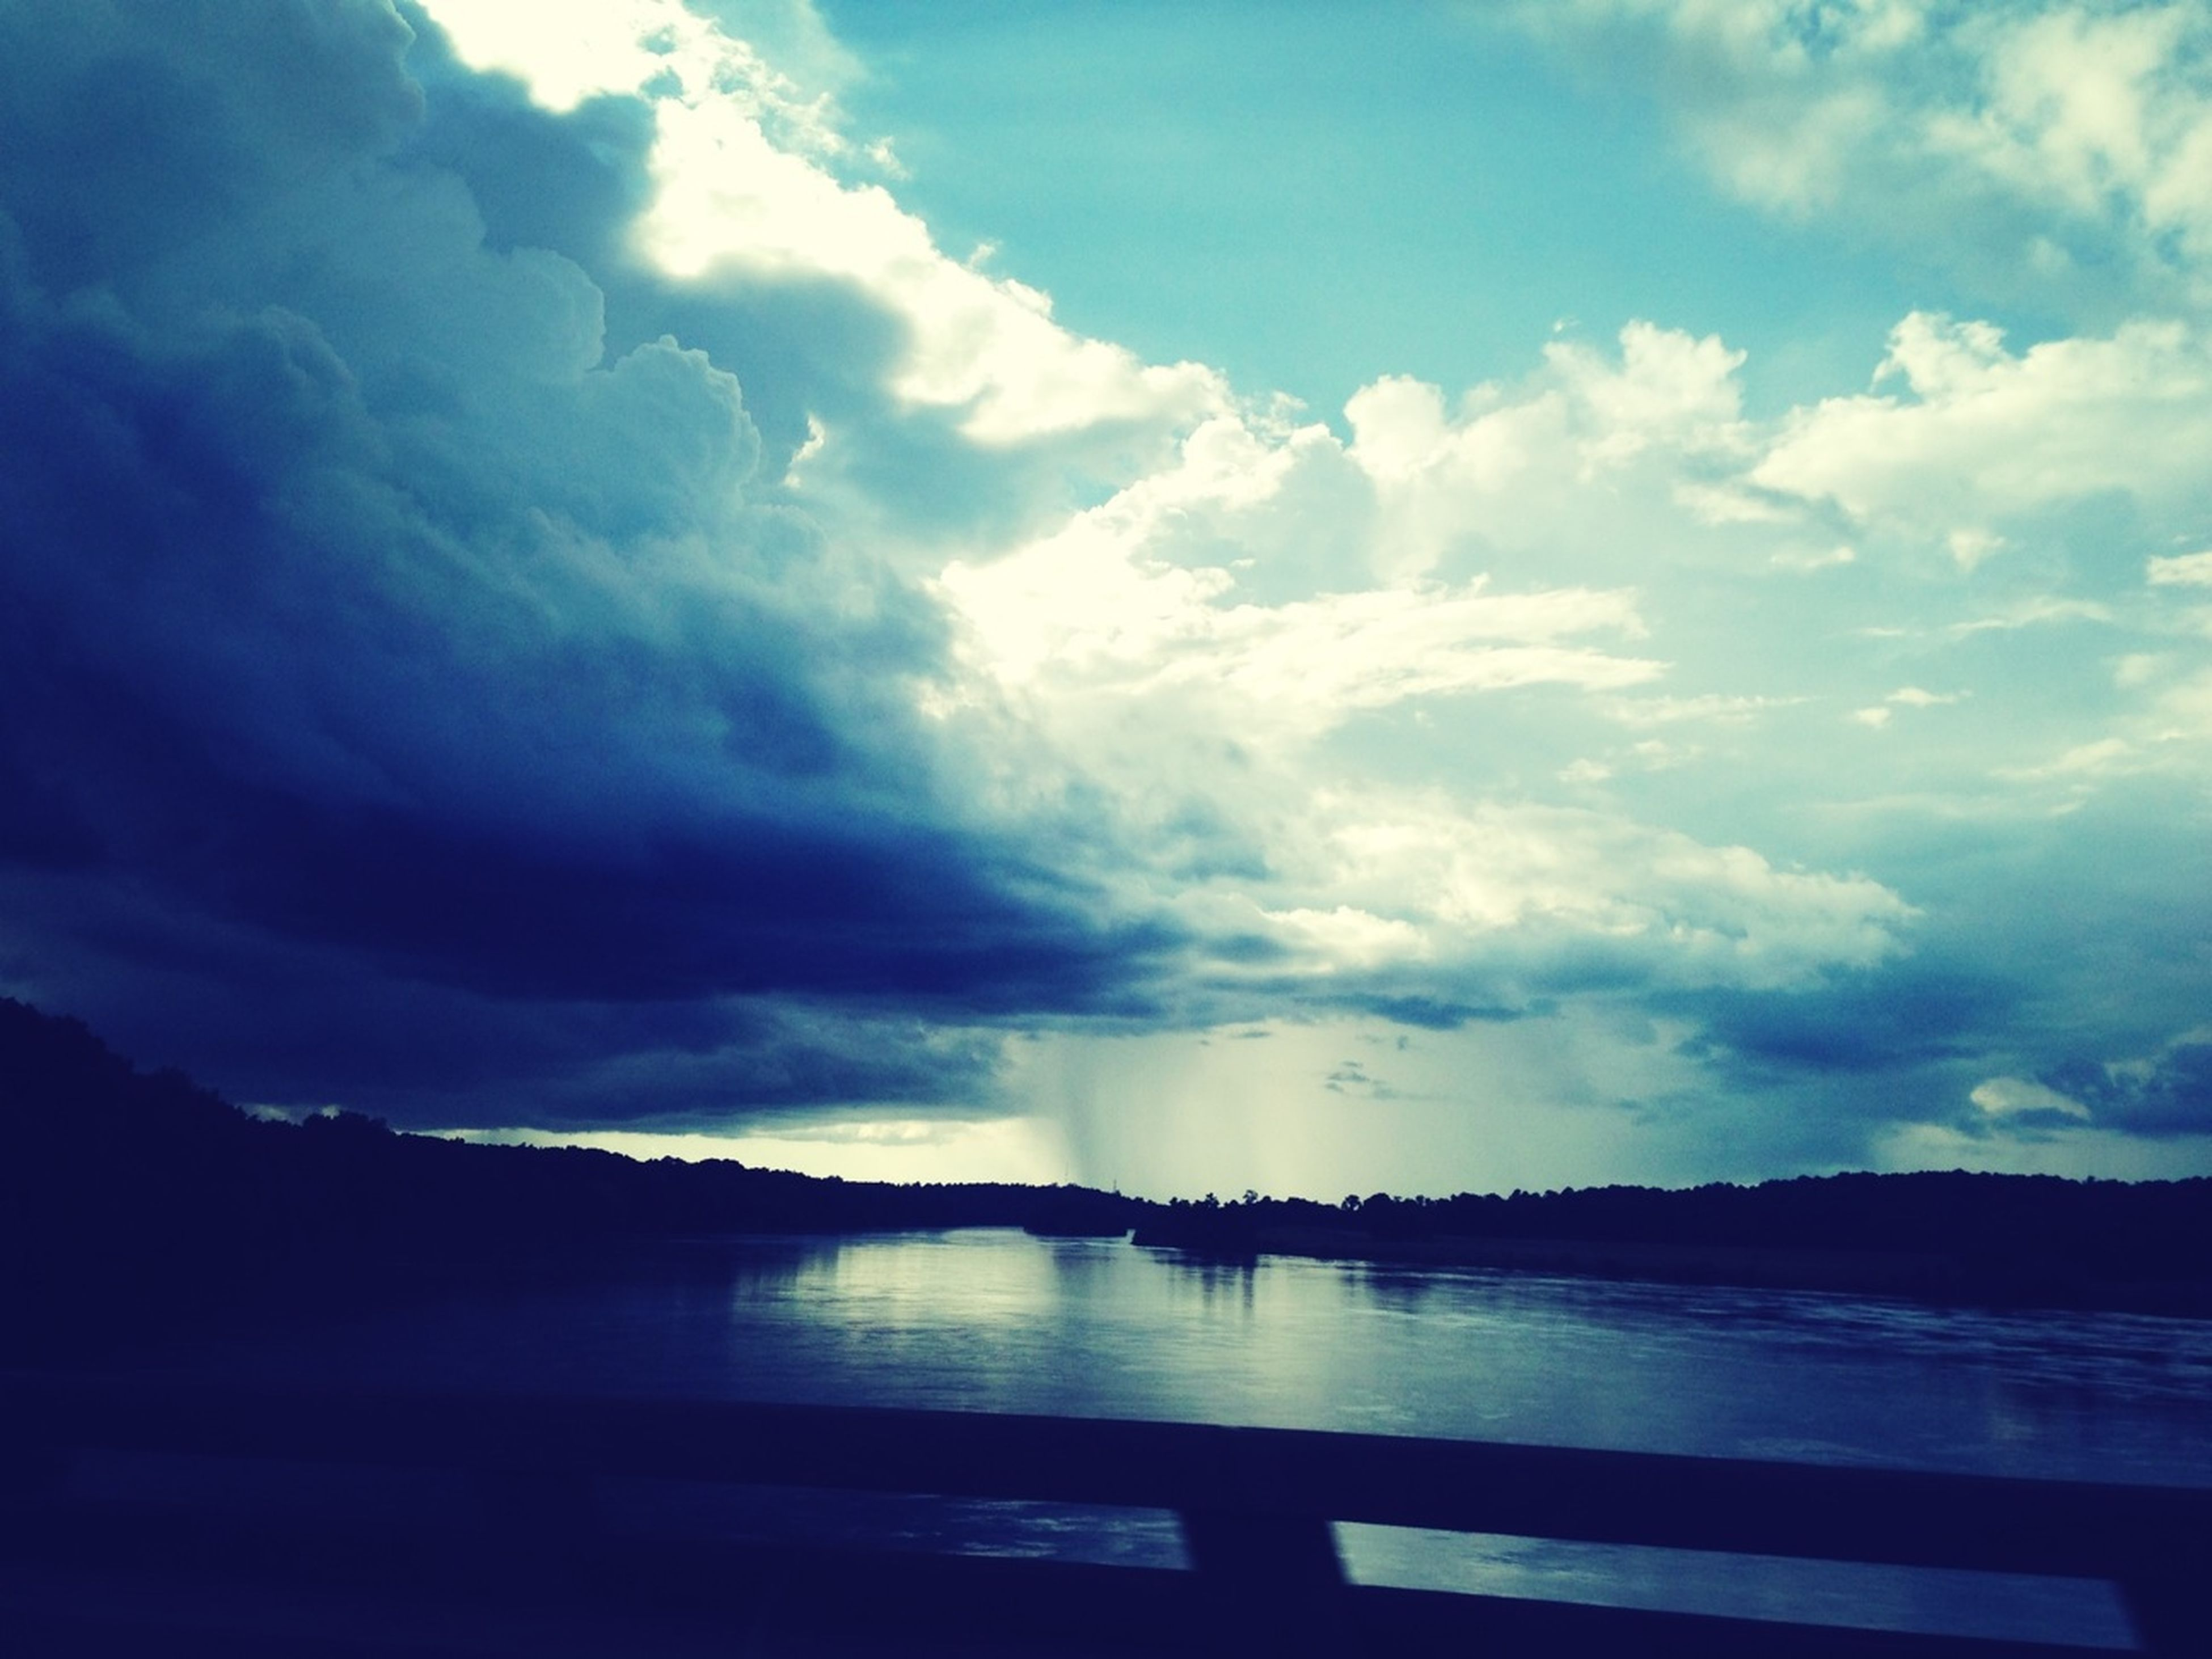 sky, water, cloud - sky, scenics, tranquil scene, tranquility, cloudy, beauty in nature, cloud, nature, lake, sea, weather, silhouette, idyllic, reflection, calm, river, overcast, dusk